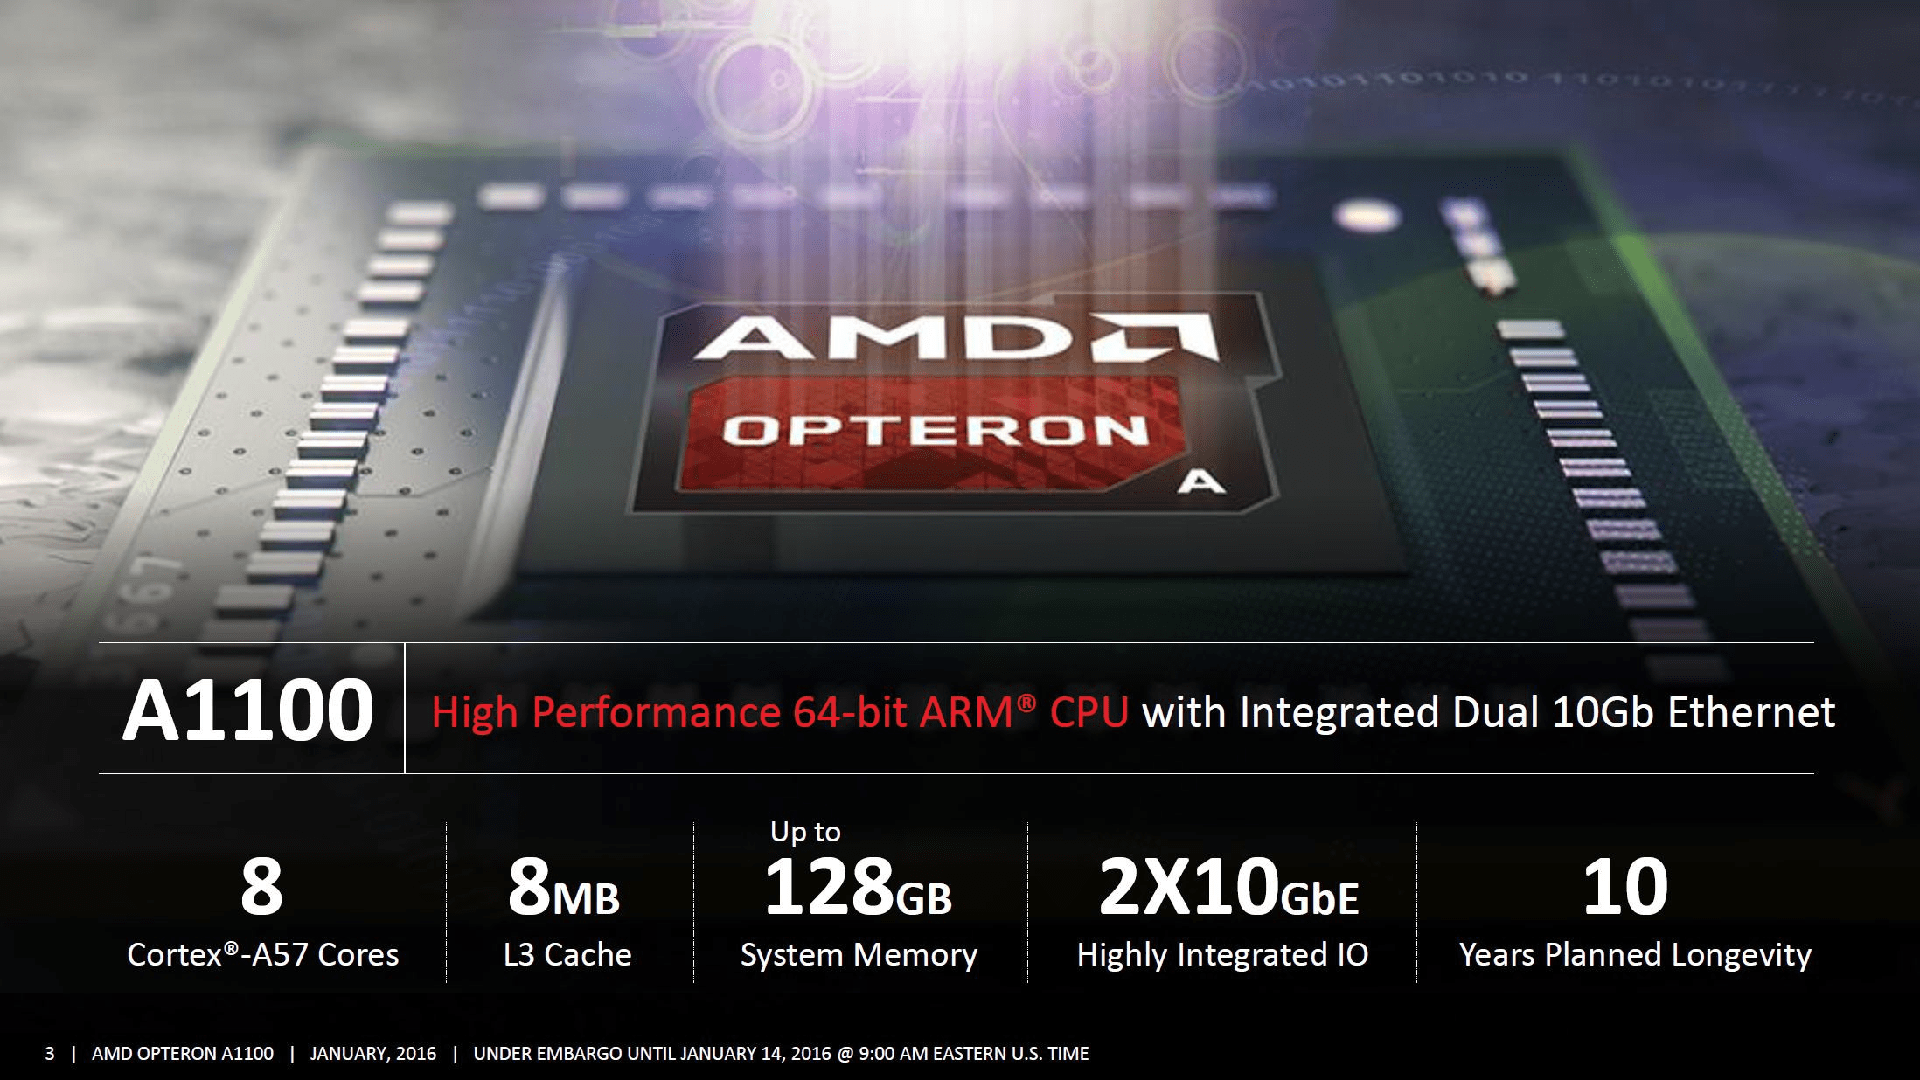 AMD Opteron A1100 processor overview.